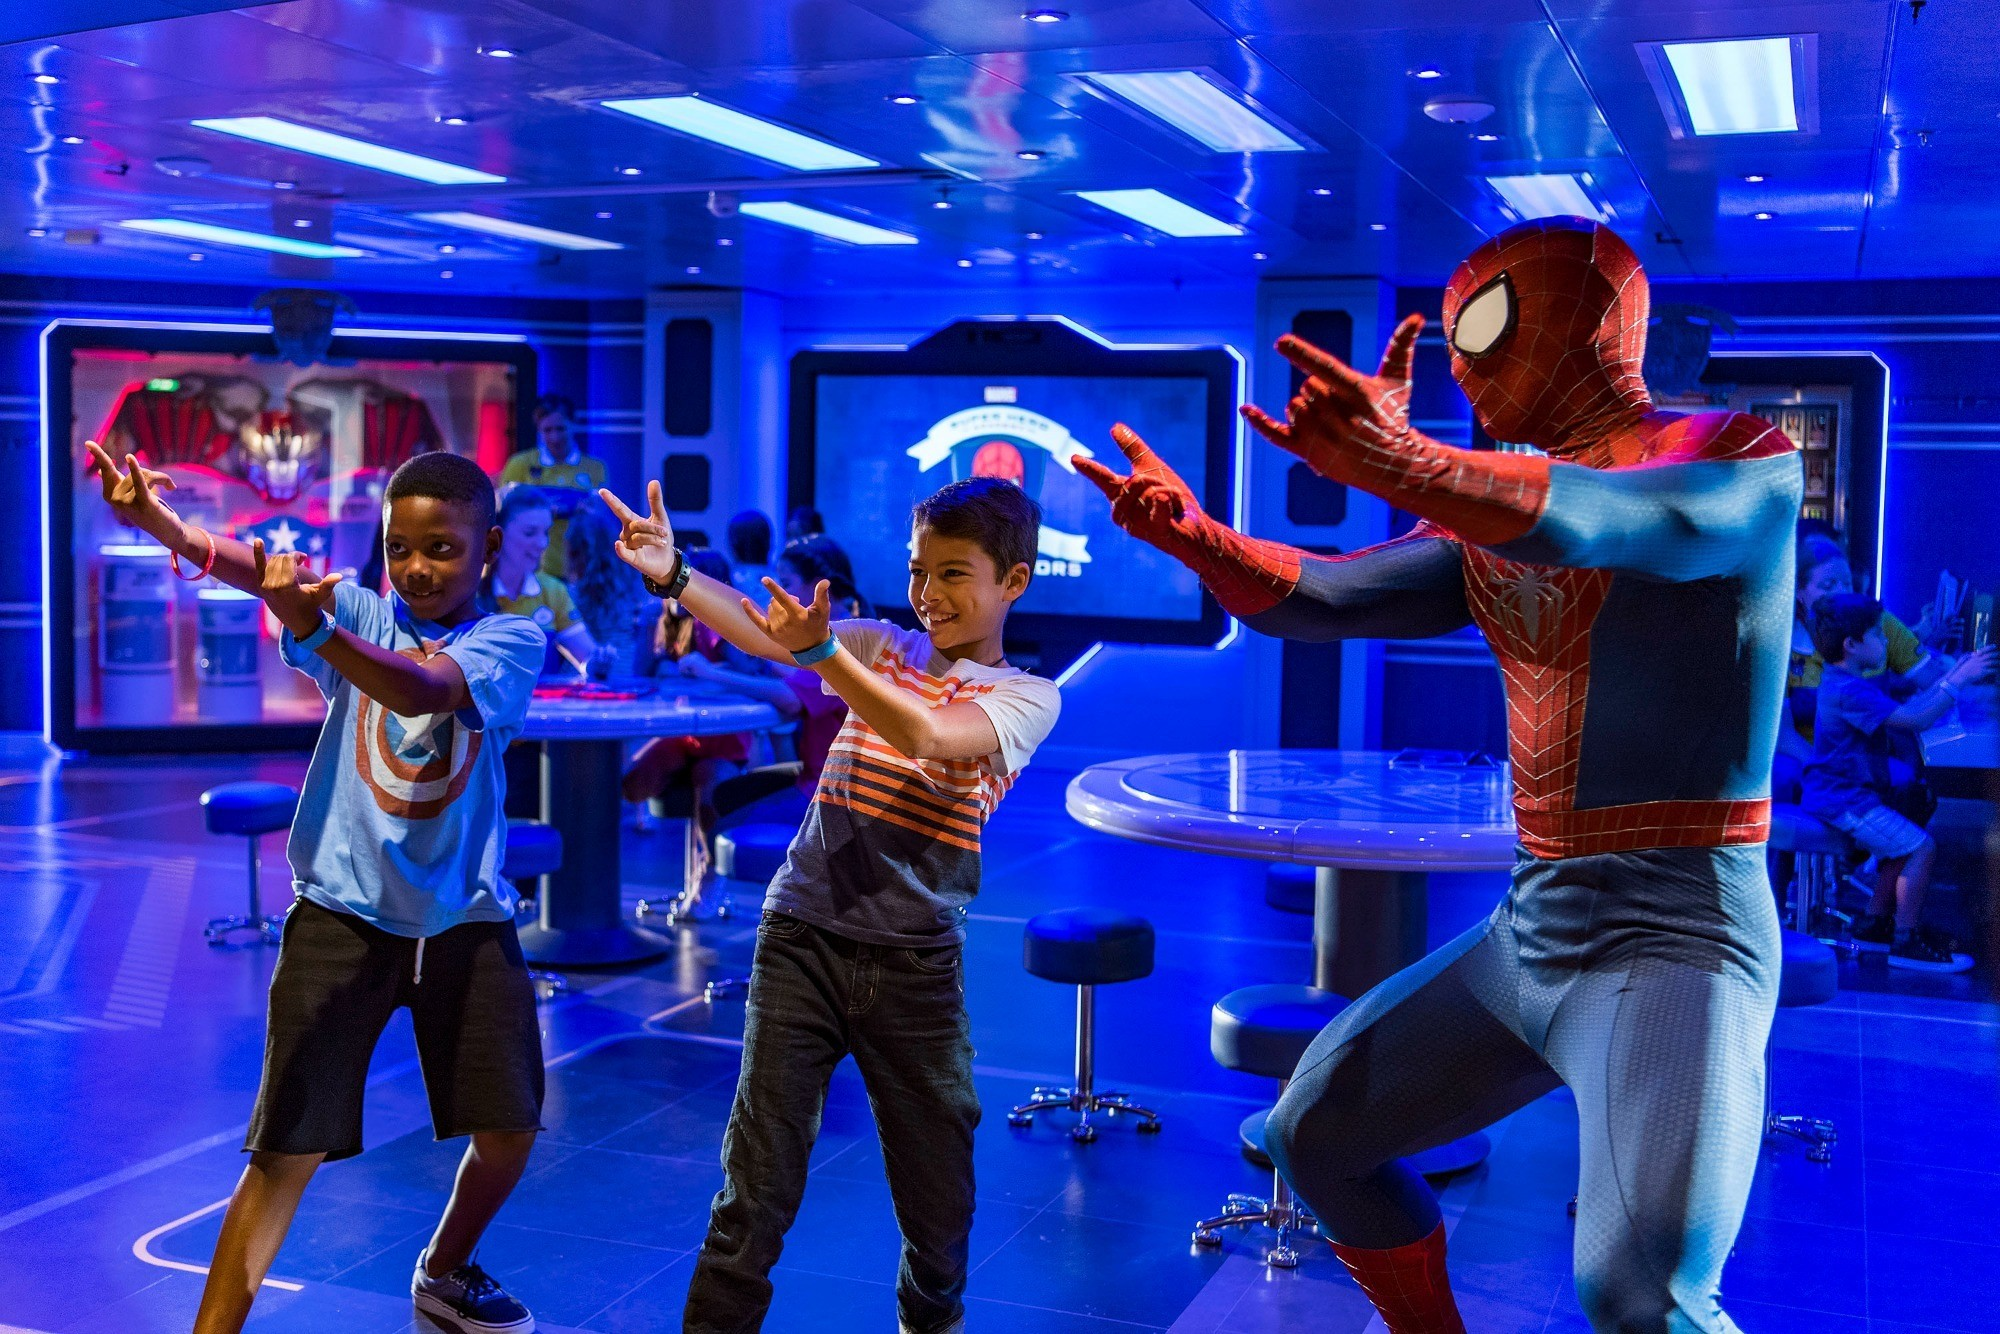 On the Disney Wonder, young guests get a special visit from Spider-Man while training at the Marvel Super Hero Academy in Disney's Oceaneer Club